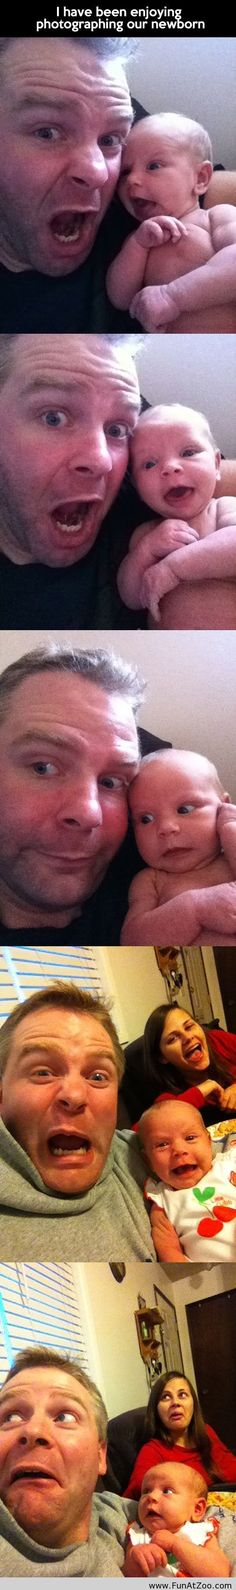 newborn pictures, parenting done right, funny pictures, newborn photos, future husband